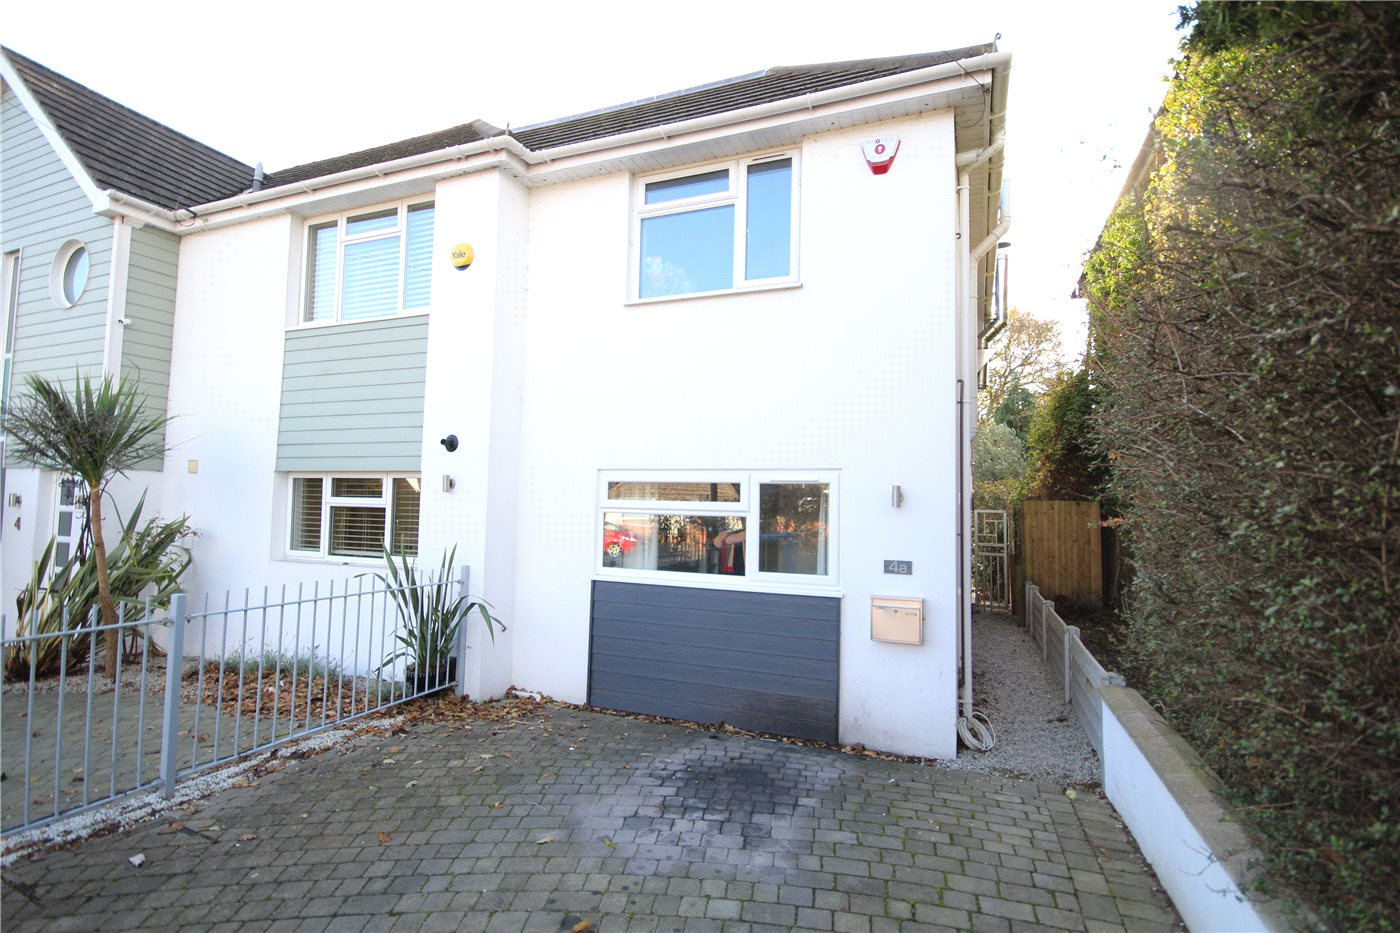 2 Bedrooms End Of Terrace House for sale in Herm Road, Poole, Dorset, BH12